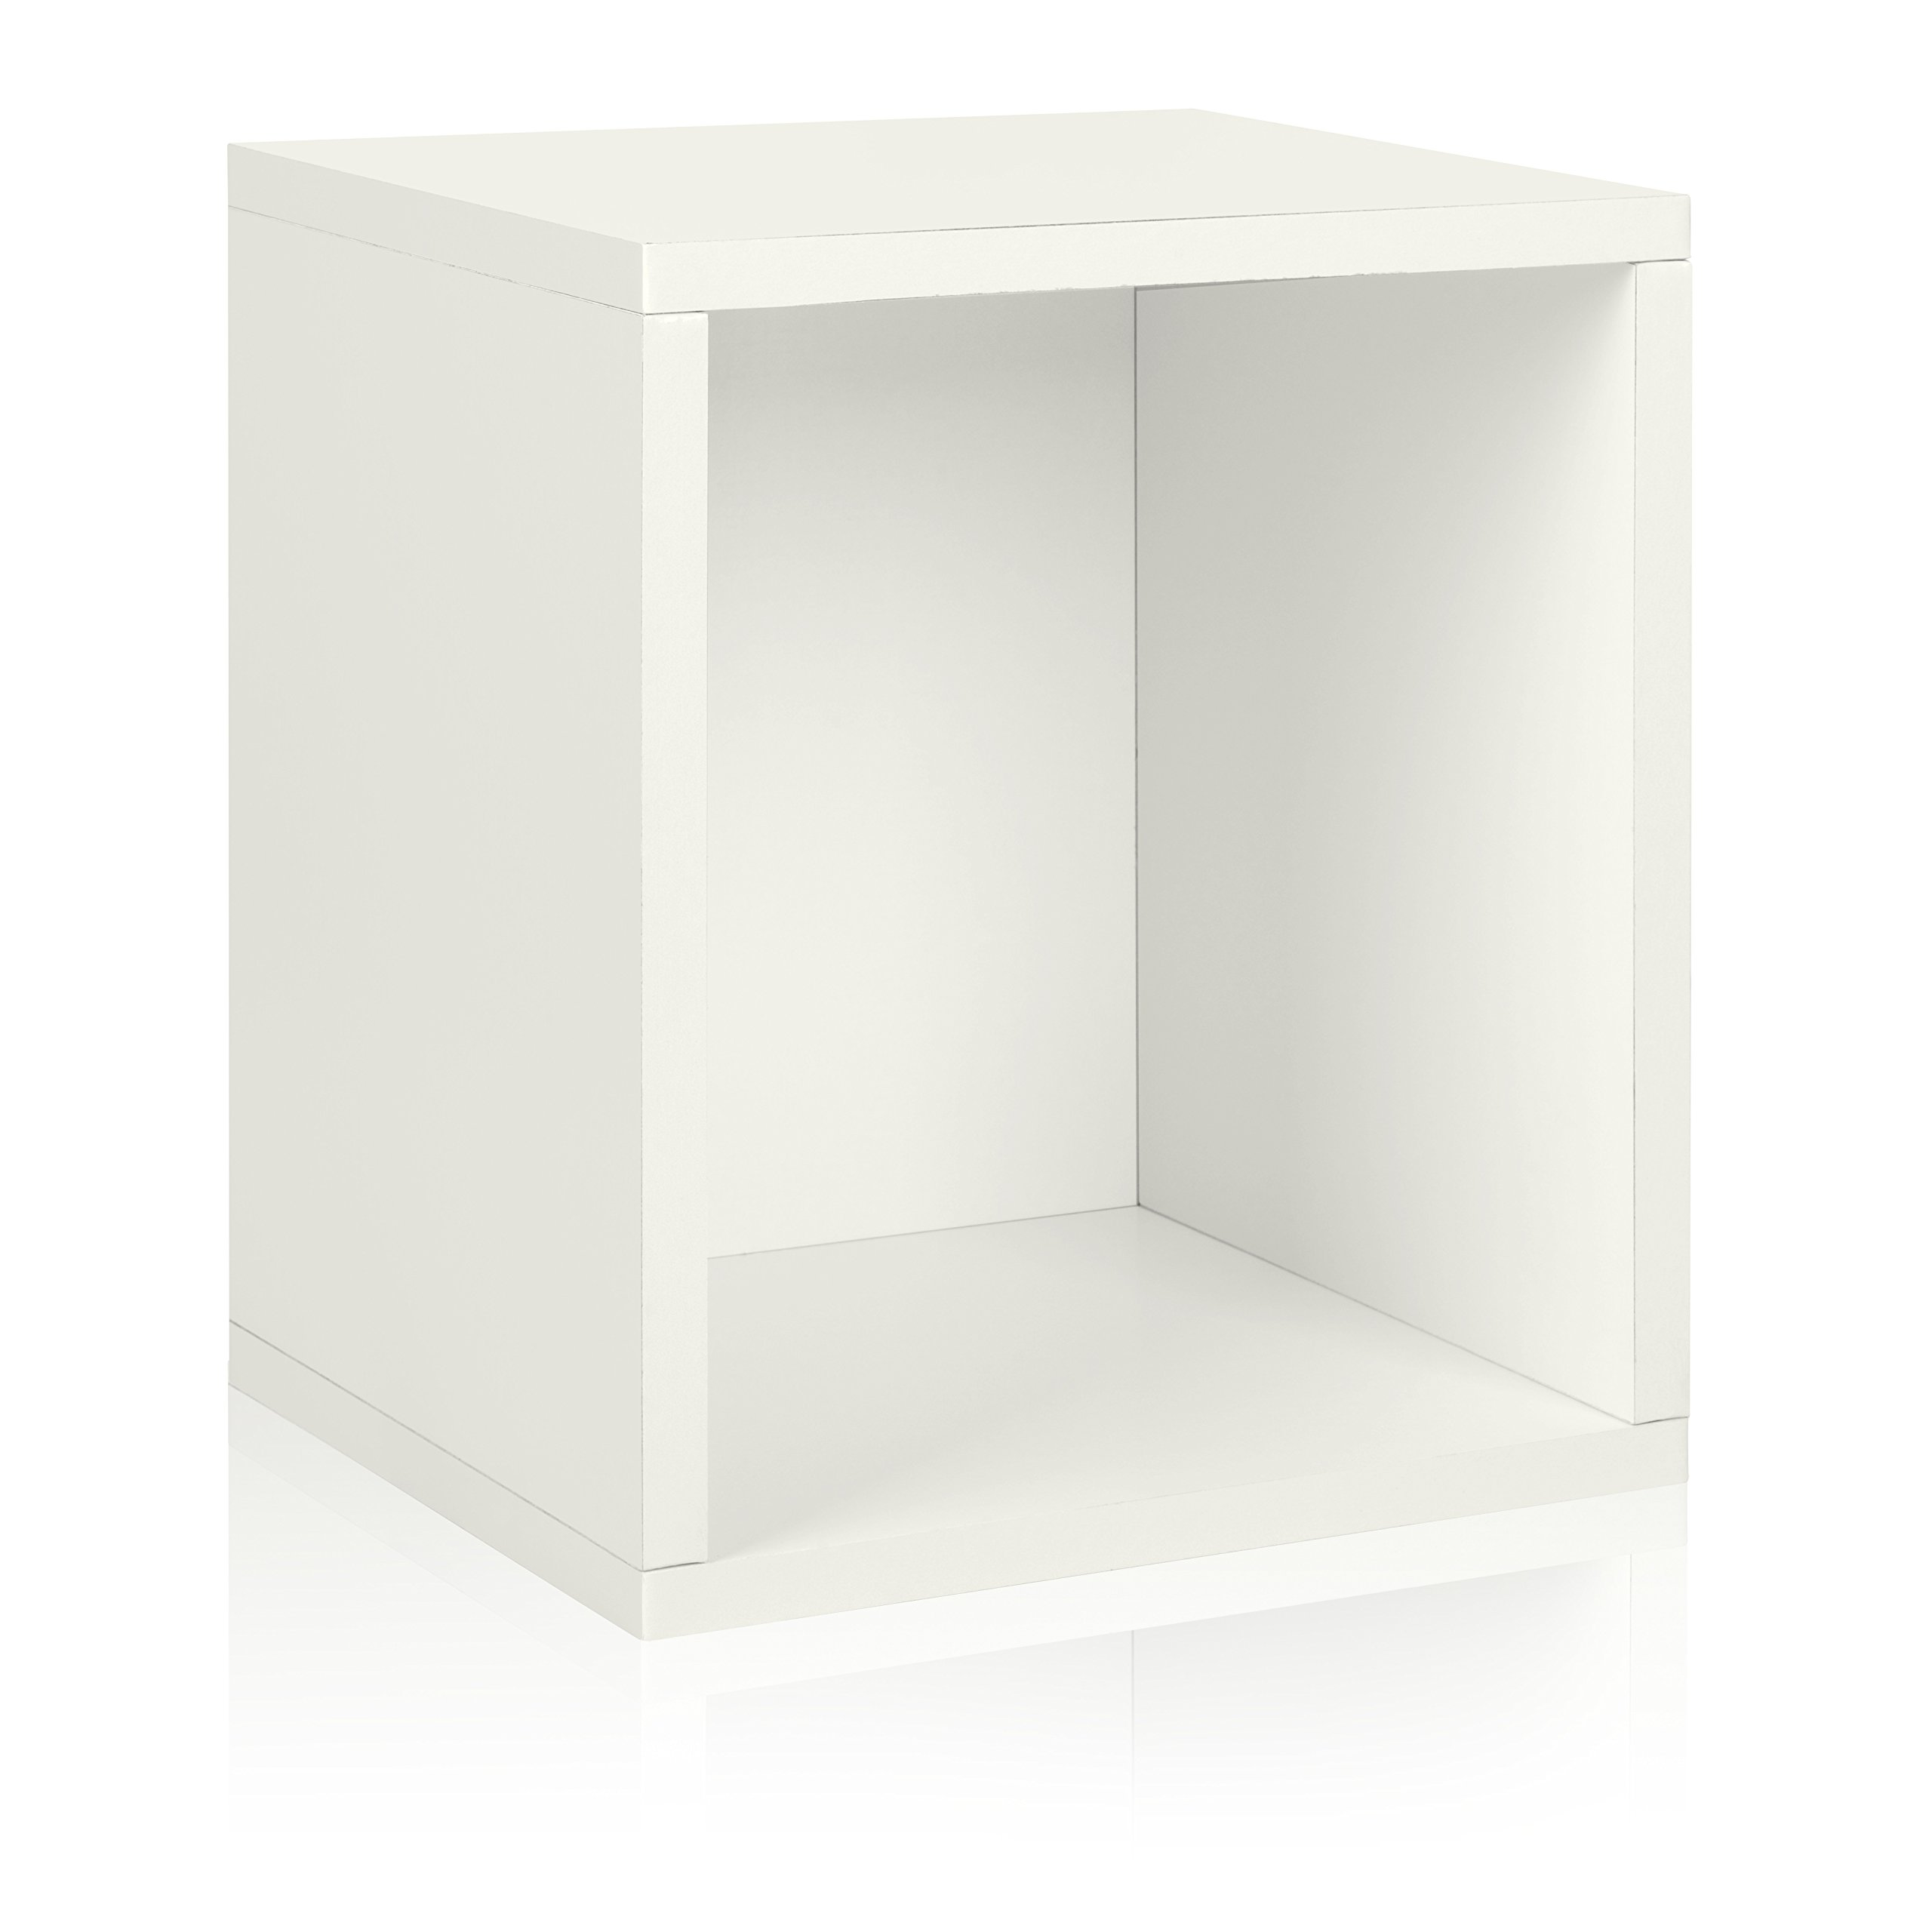 Way Basics Eco Stackable Storage Cube Plus and Cubby Organizer, White (made from sustainable non-toxic zBoard paperboard)